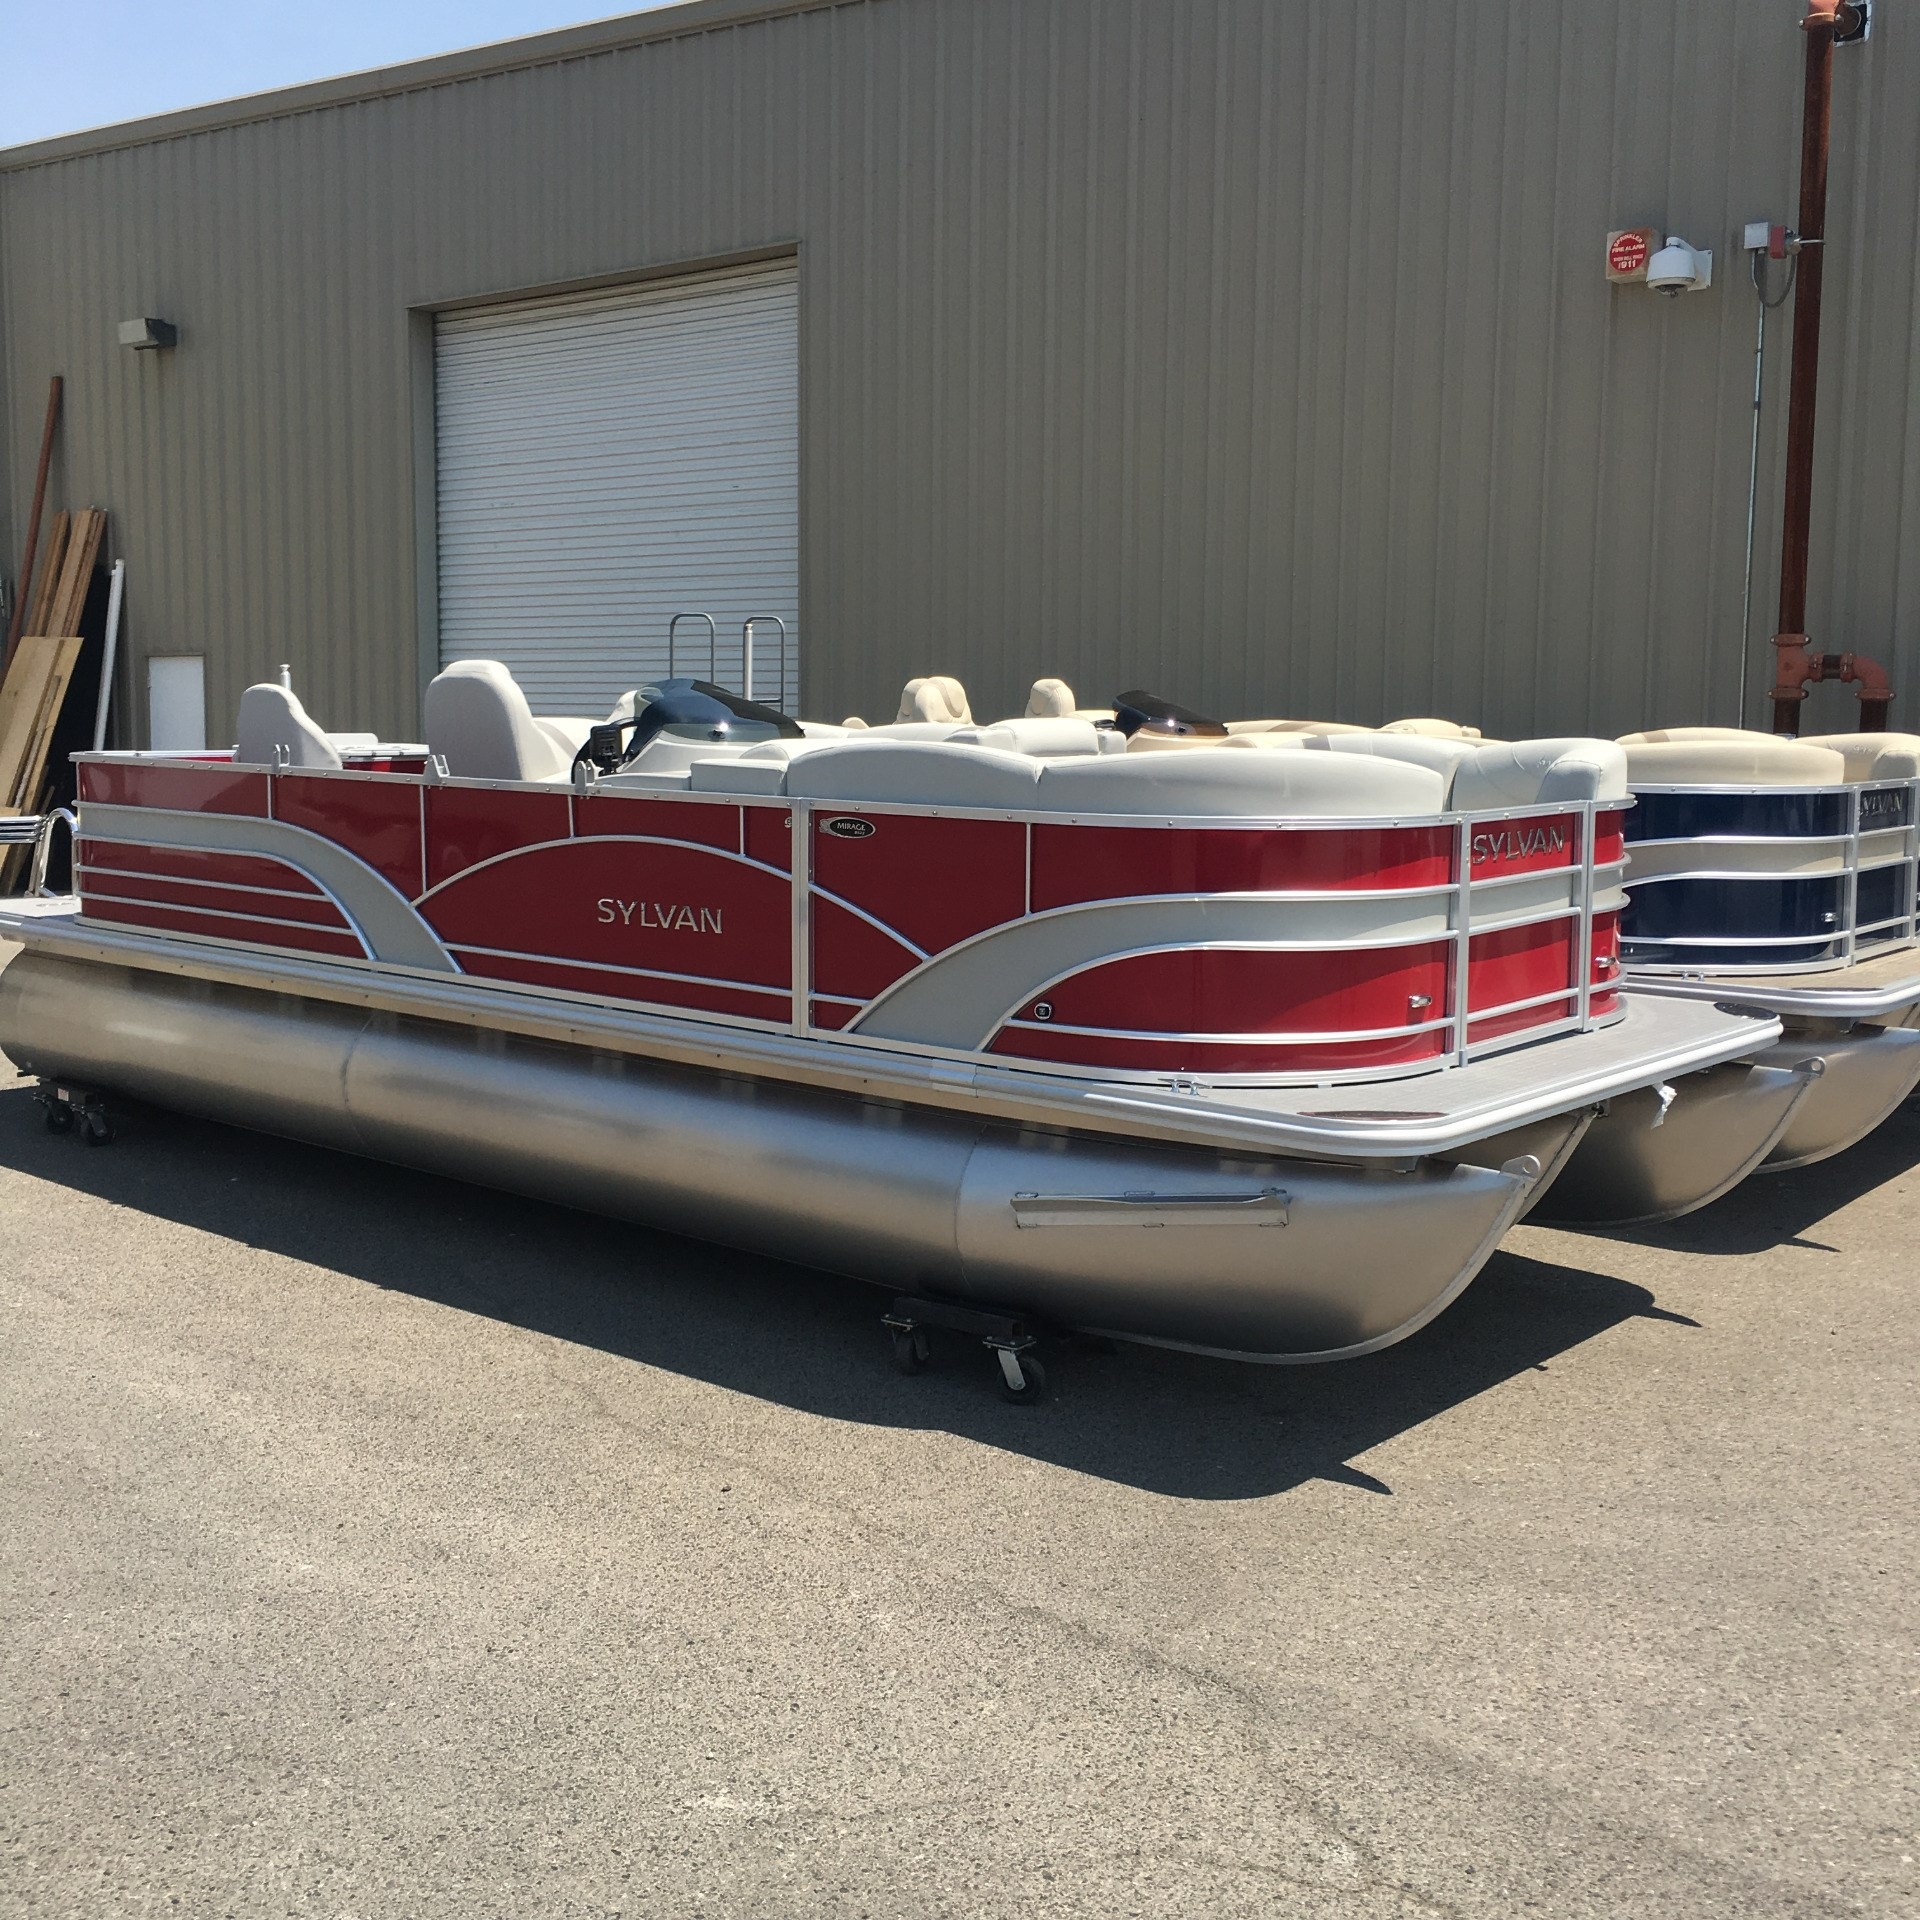 Sylvan boats for sale 8 for Syvlan